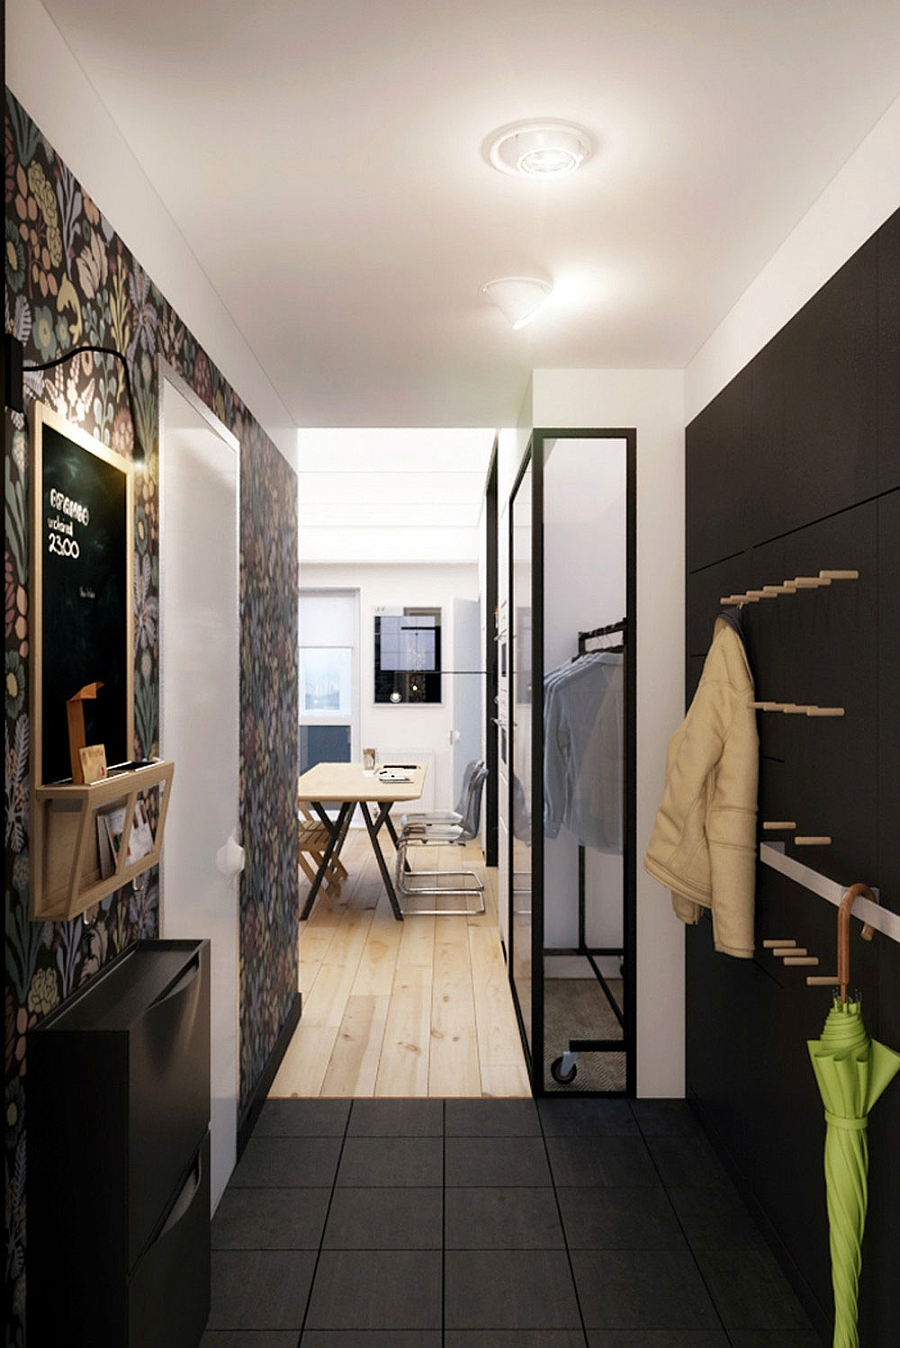 Small-entryway-clad-in-black.jpg